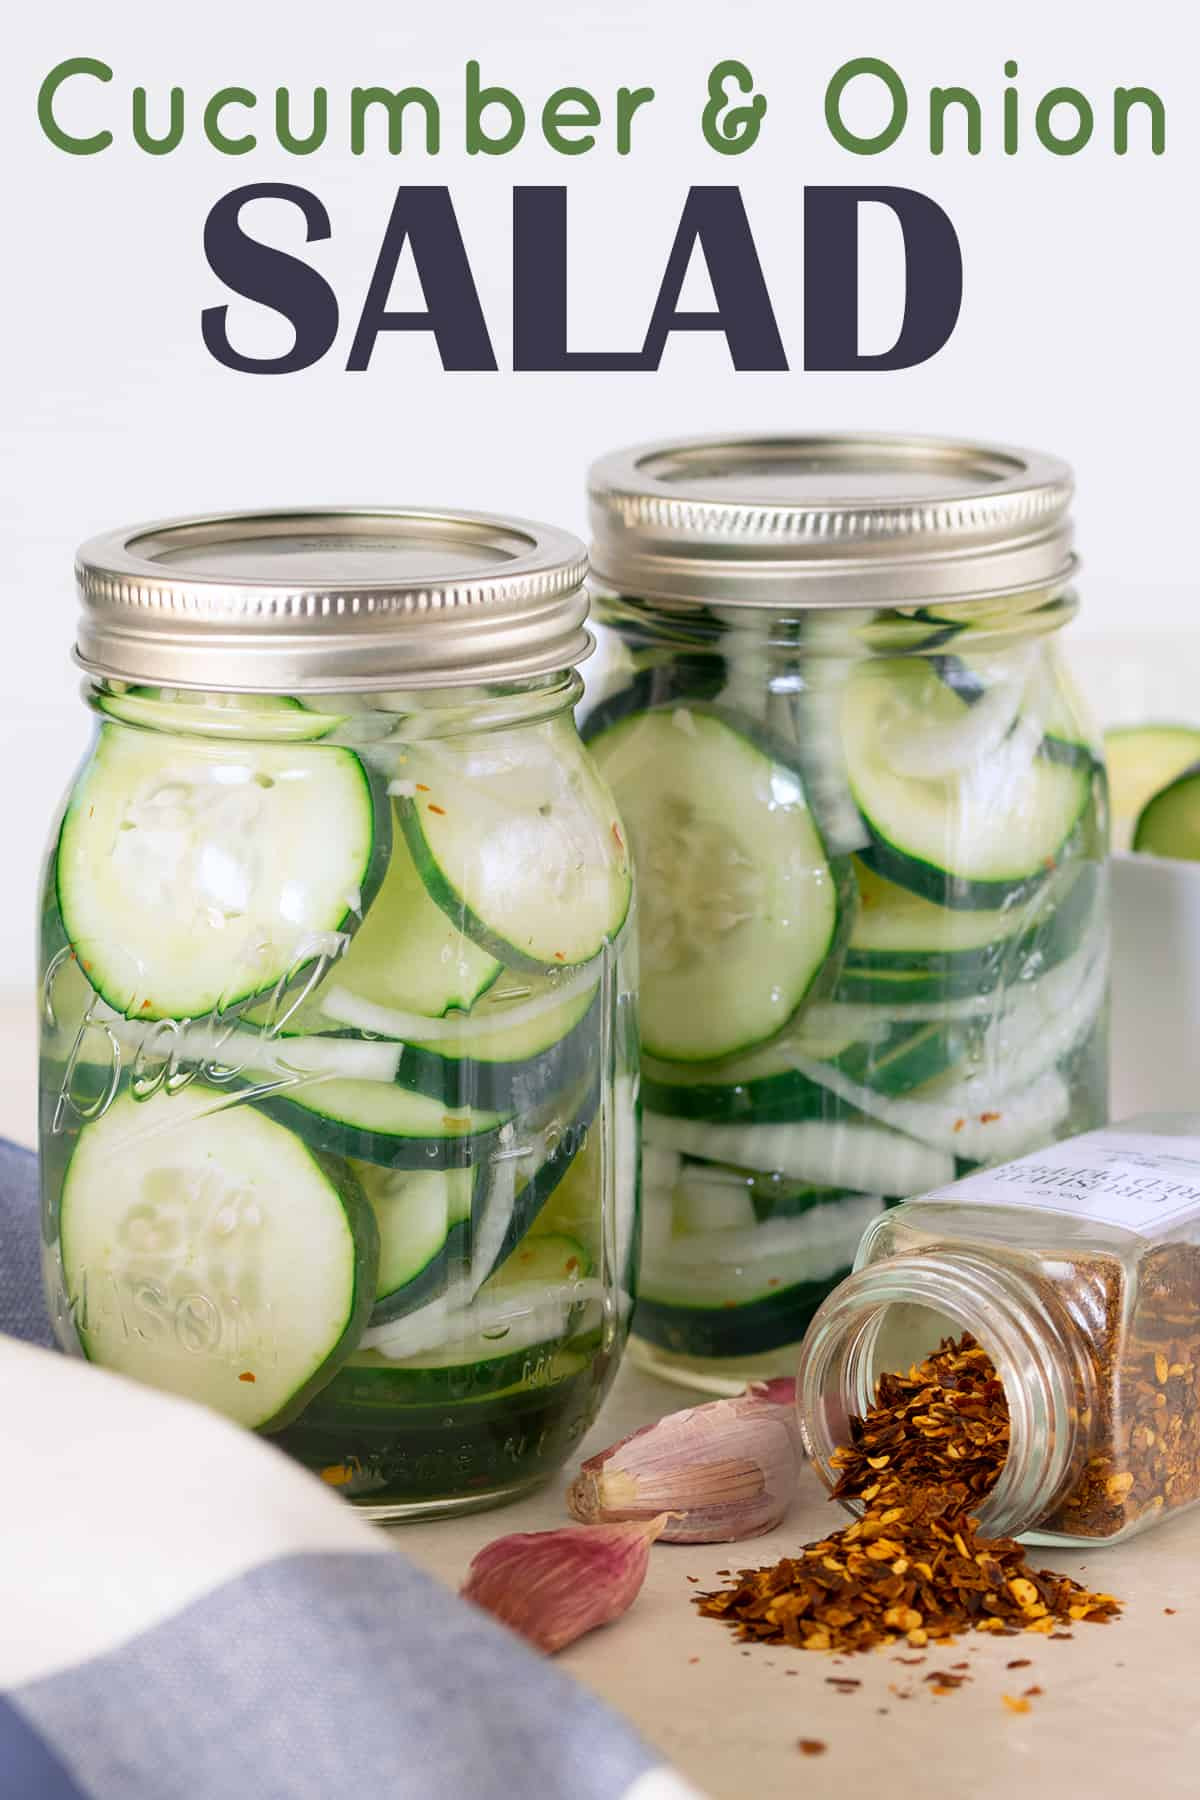 Two mason jars filled with cucumber and onion salad in vinegar on wooden table next to sliced cucumber.